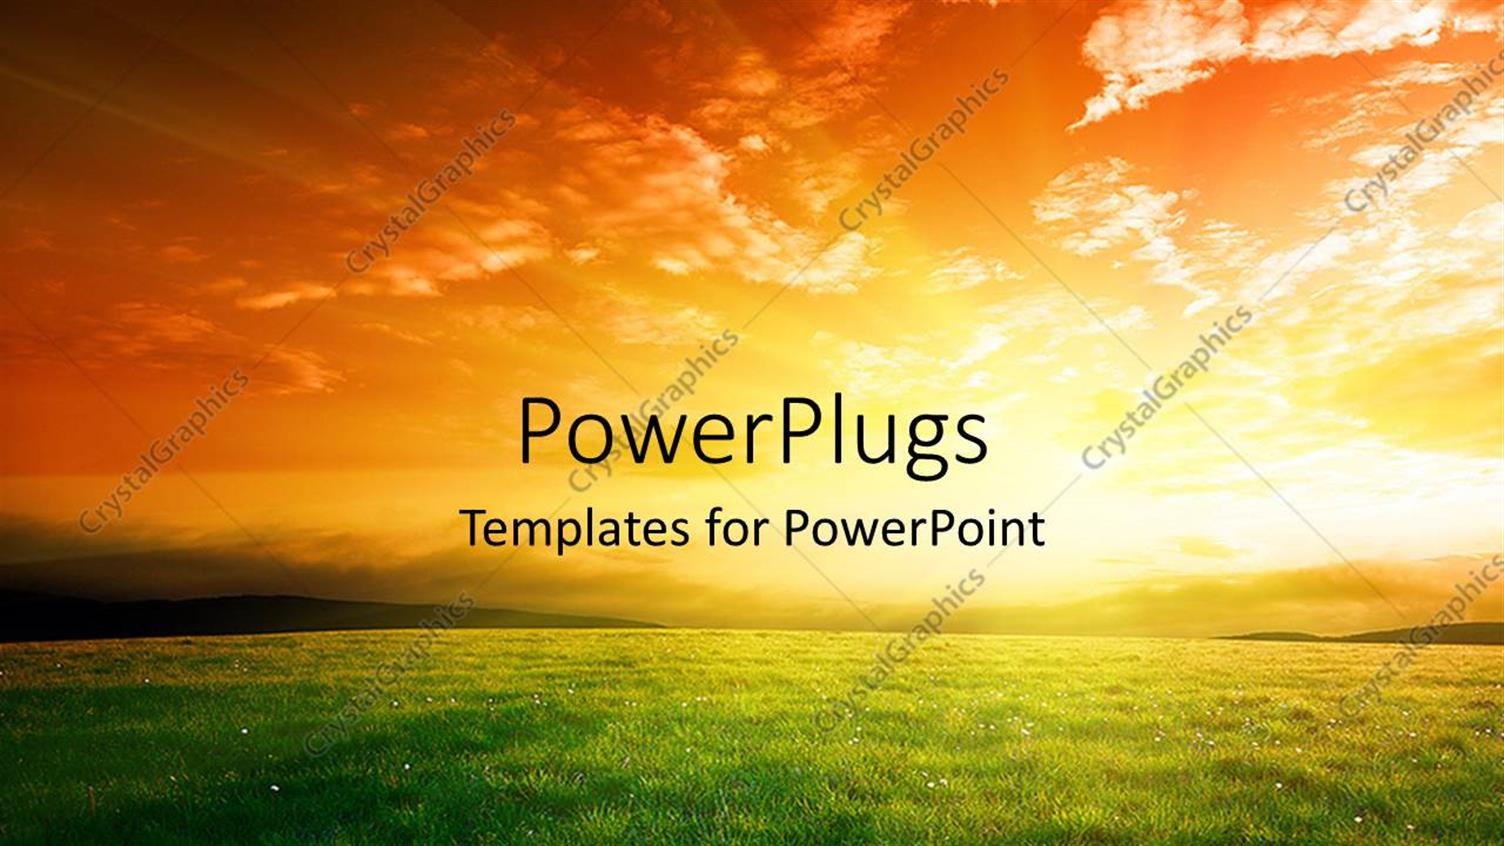 PowerPoint Template Displaying a Sun in the Background with a Lot of Grass in Front